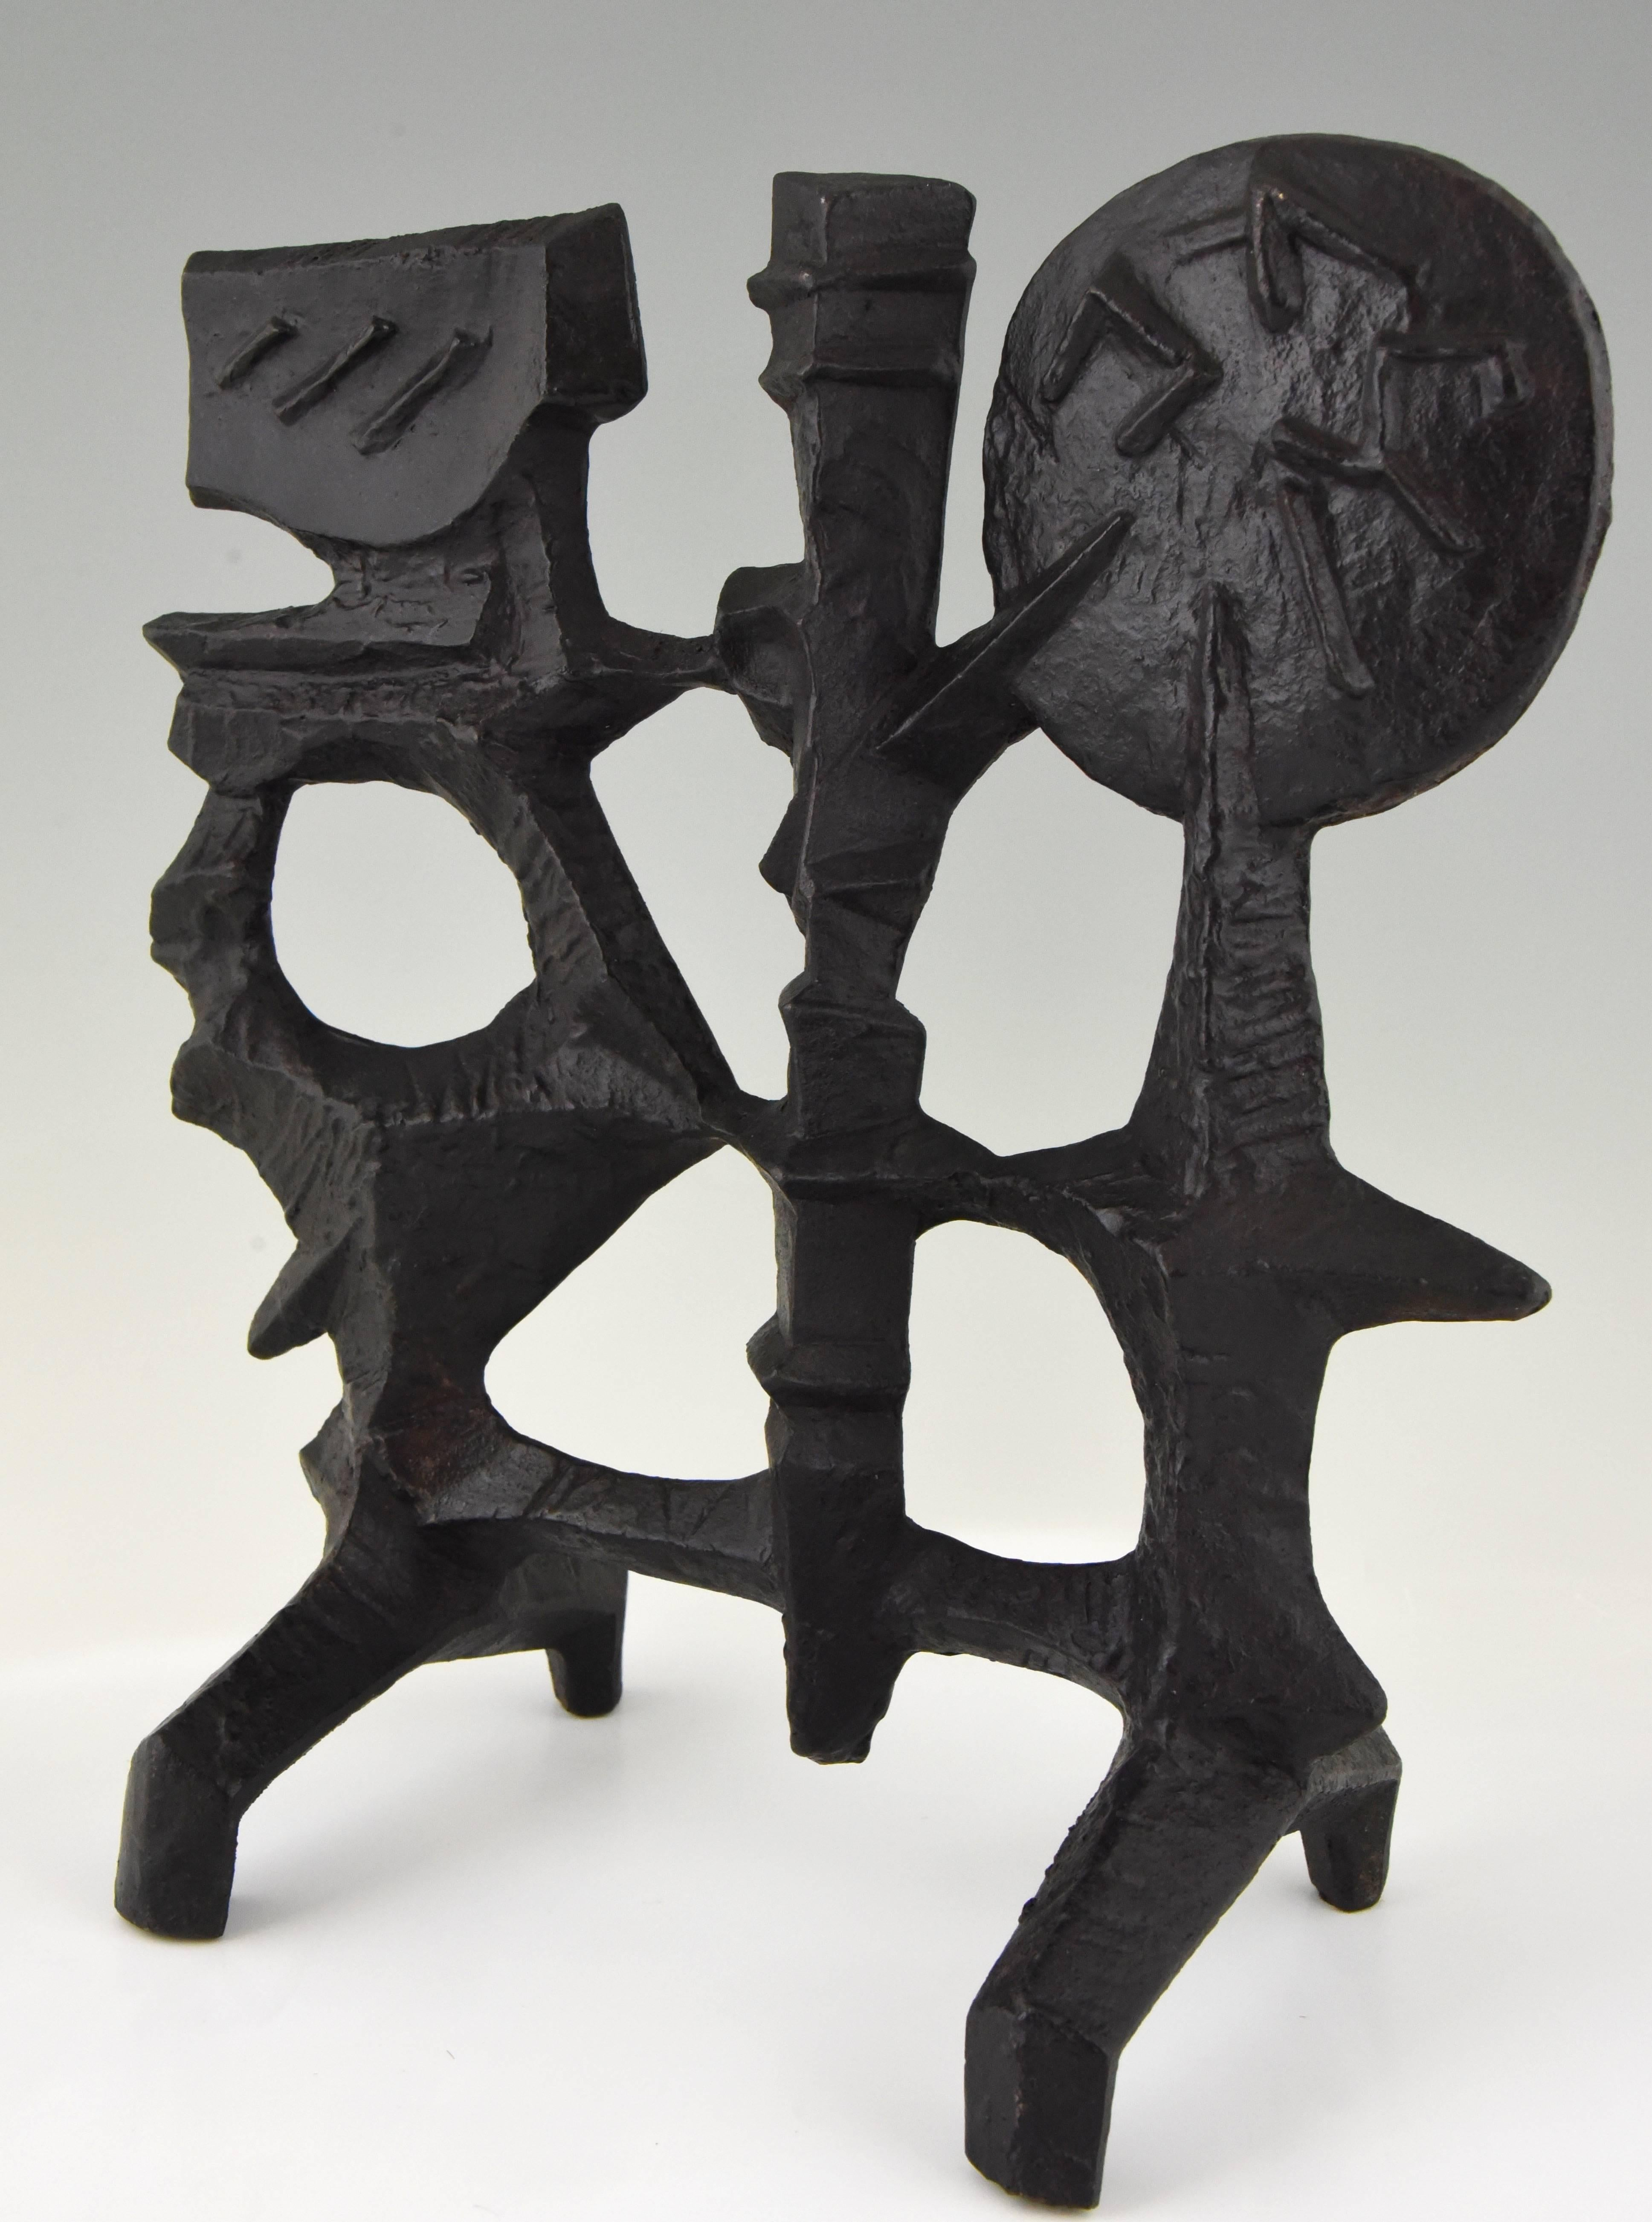 Mid Century Modern Abstract Iron Sculpture By Olle Hermansson 1960